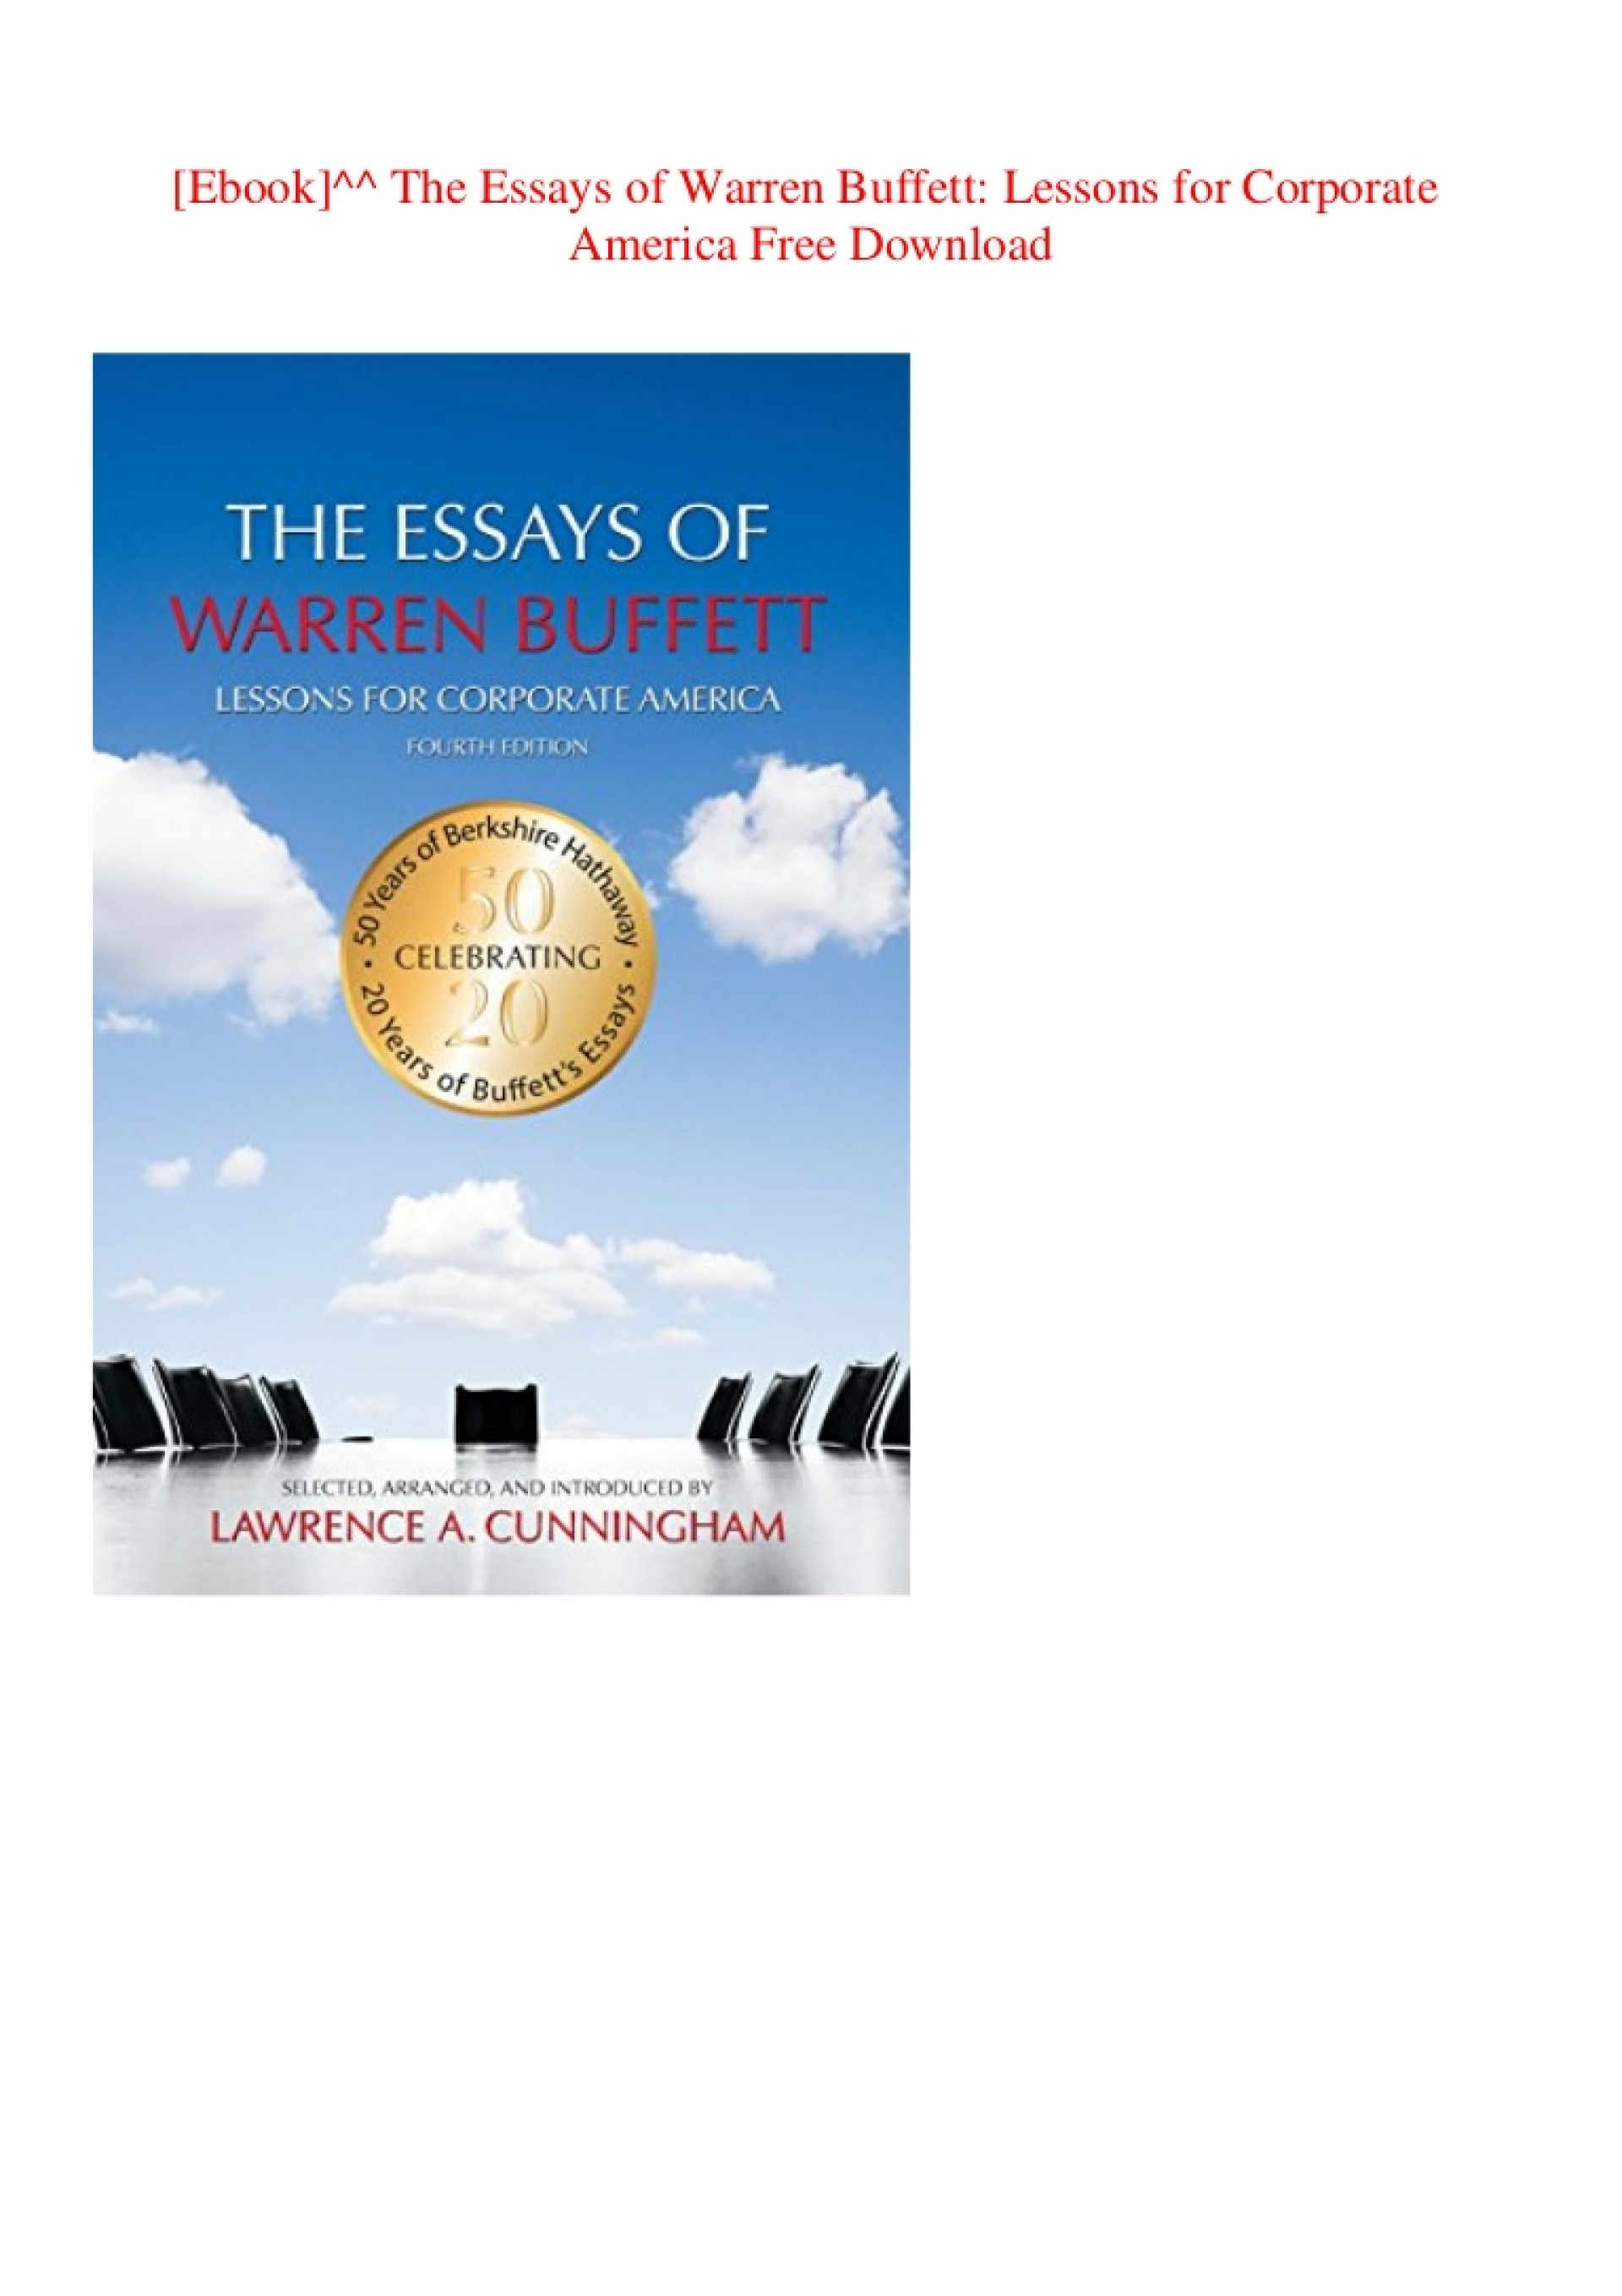 022 Essay Example The Essays Of Warren Buffett Lessons For Corporate America Ebooktheessaysofwarrenbuffettlessonsforcorporateamericafreedownload Thumbnail Remarkable Third Edition 3rd Second Pdf Audio Book 1920